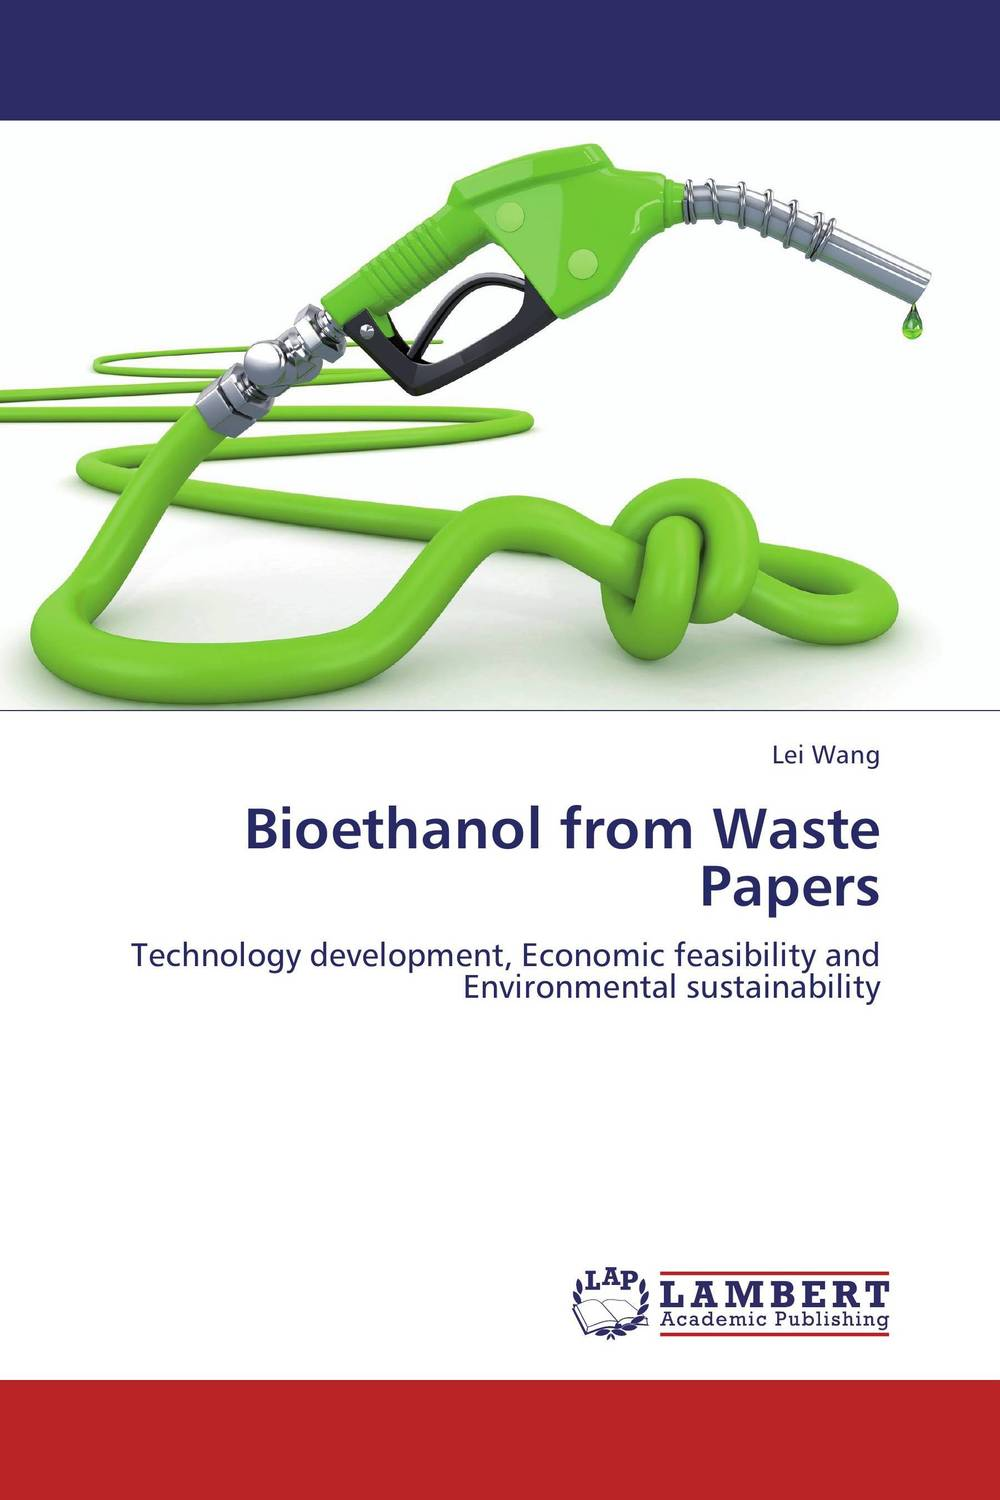 Bioethanol from Waste Papers lei wang bioethanol from waste papers